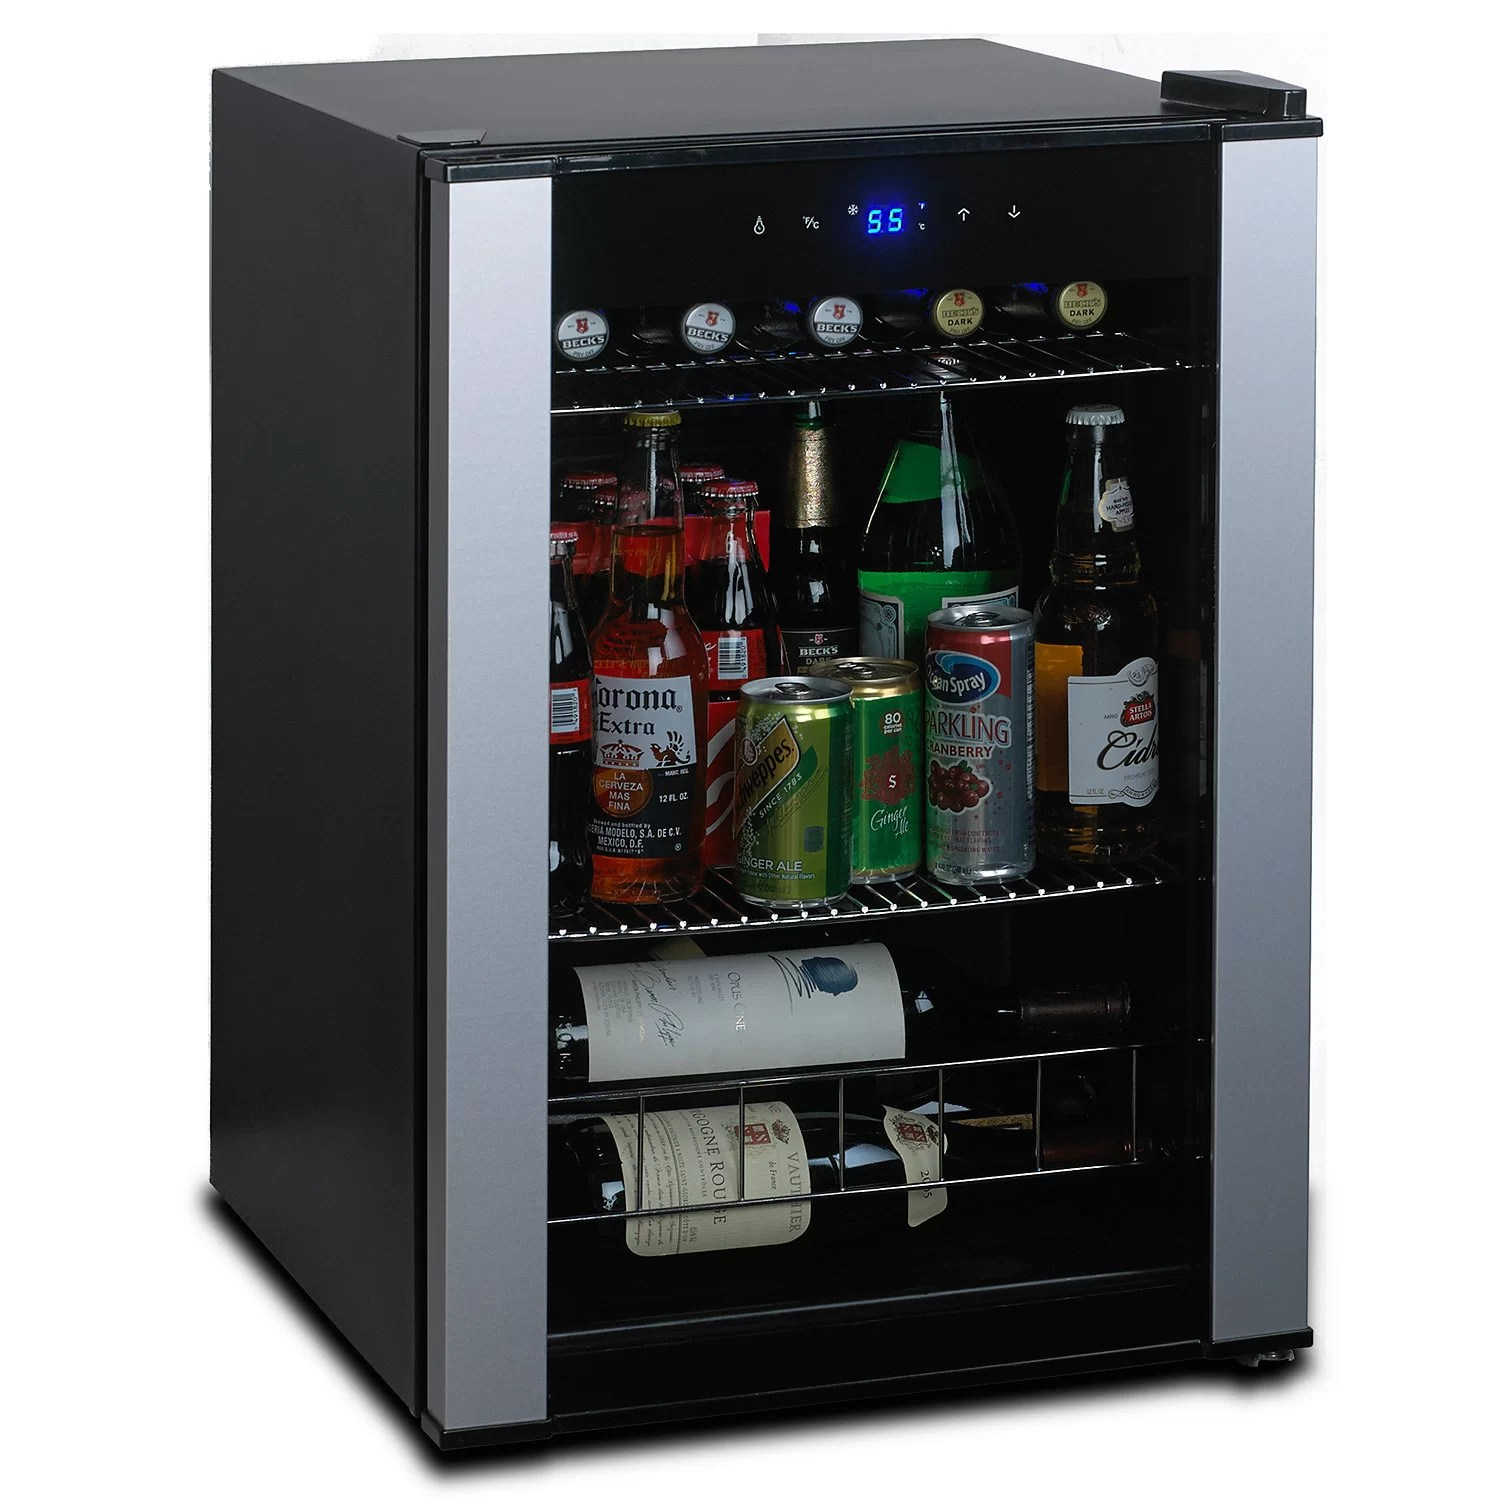 Commercial Glass Door Mini Refrigerator From : Tinfishclematis.com.  Evolution Series Wine Enthusiast Beverage Center